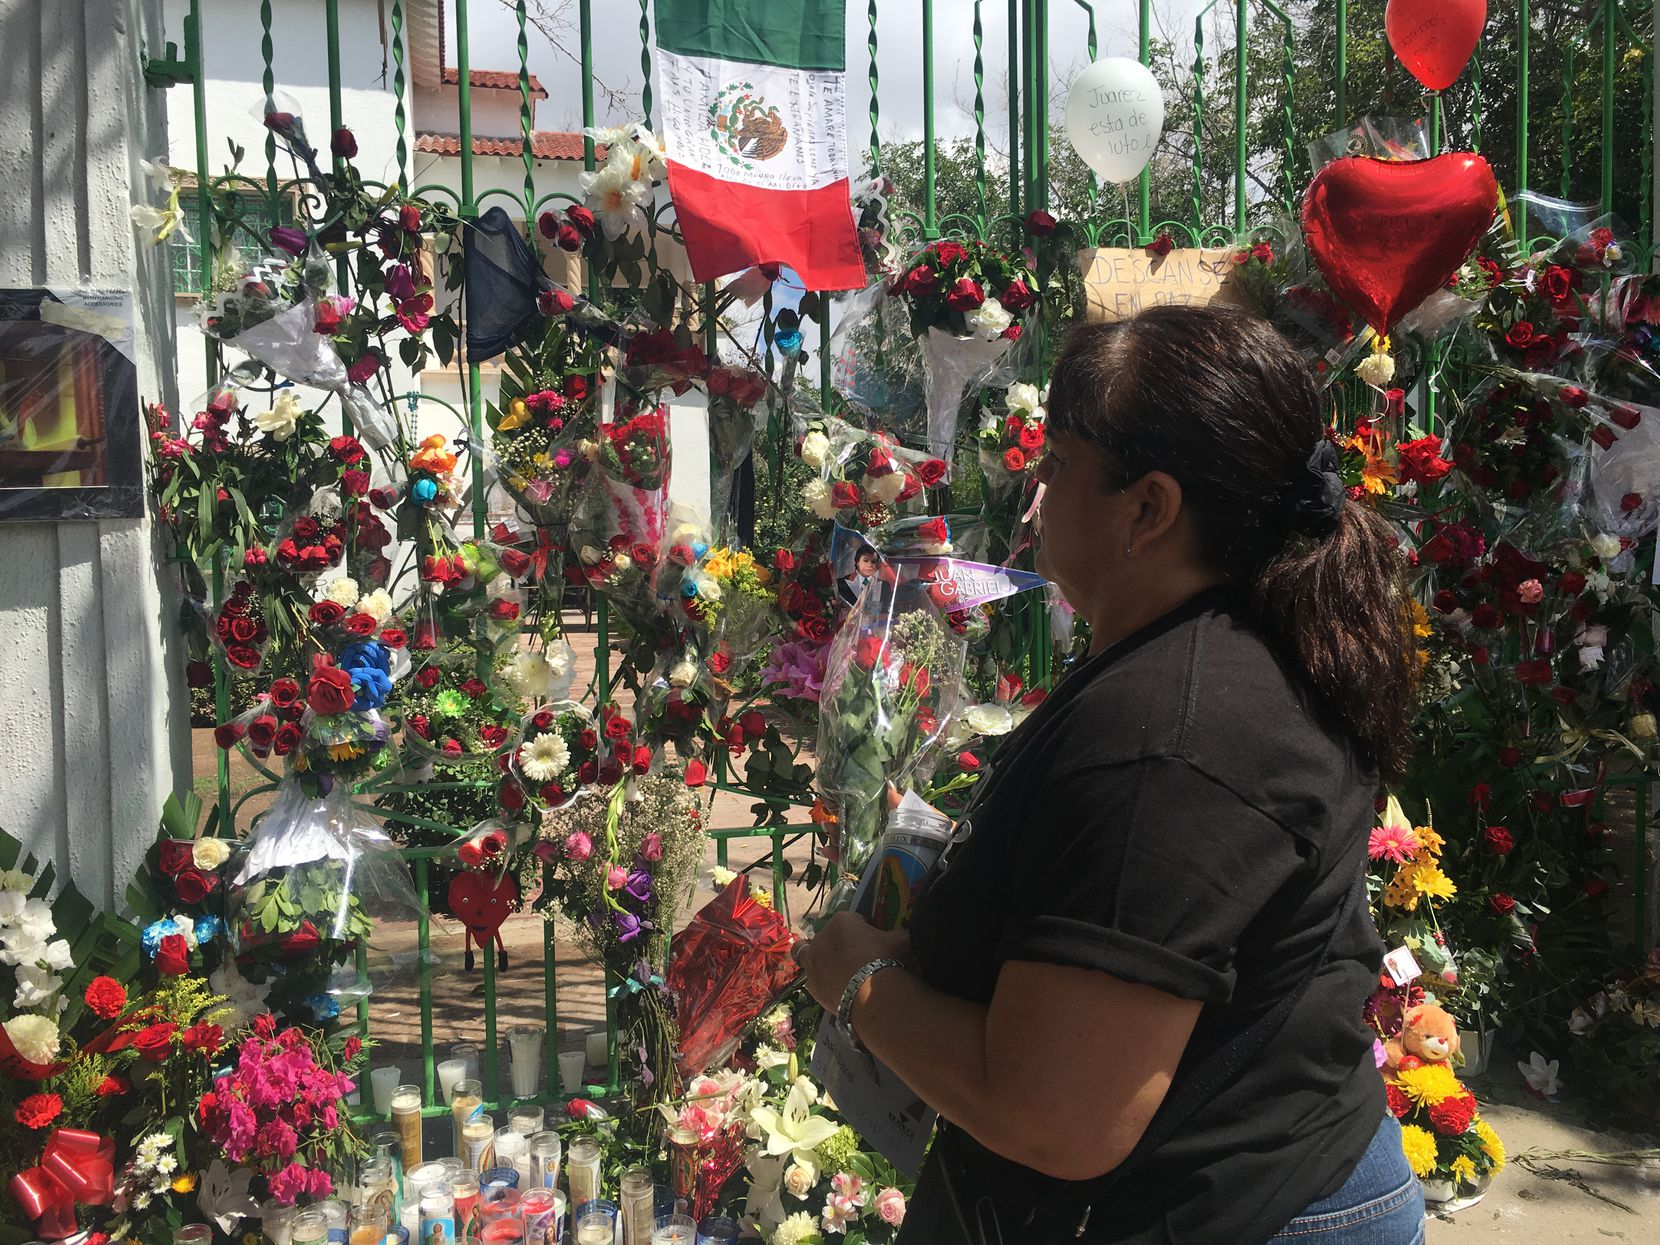 Mourners placed flowers outside a home owned by singer Juan Gabriel in Ciudad Juarez, the border city where the iconic singer started out as a street musician.